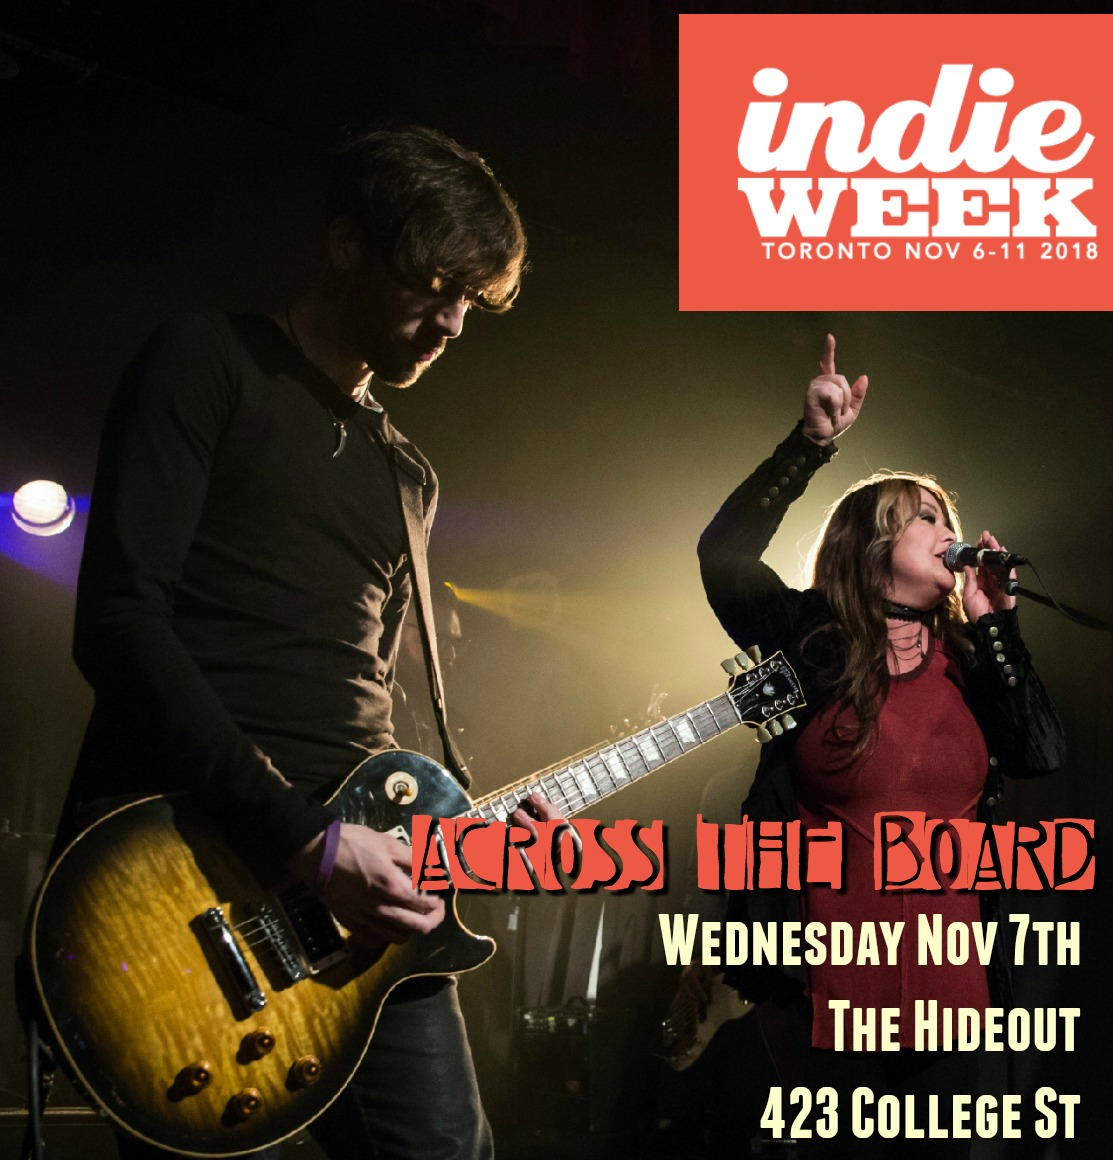 Top 5 Itunes Rock Band Scheduled For Indie Week Showcase In Toronto Printed Circuit Board Dinner Plates Zazzle Across The Will Perform At Hideout On November 7th During Canada 2018